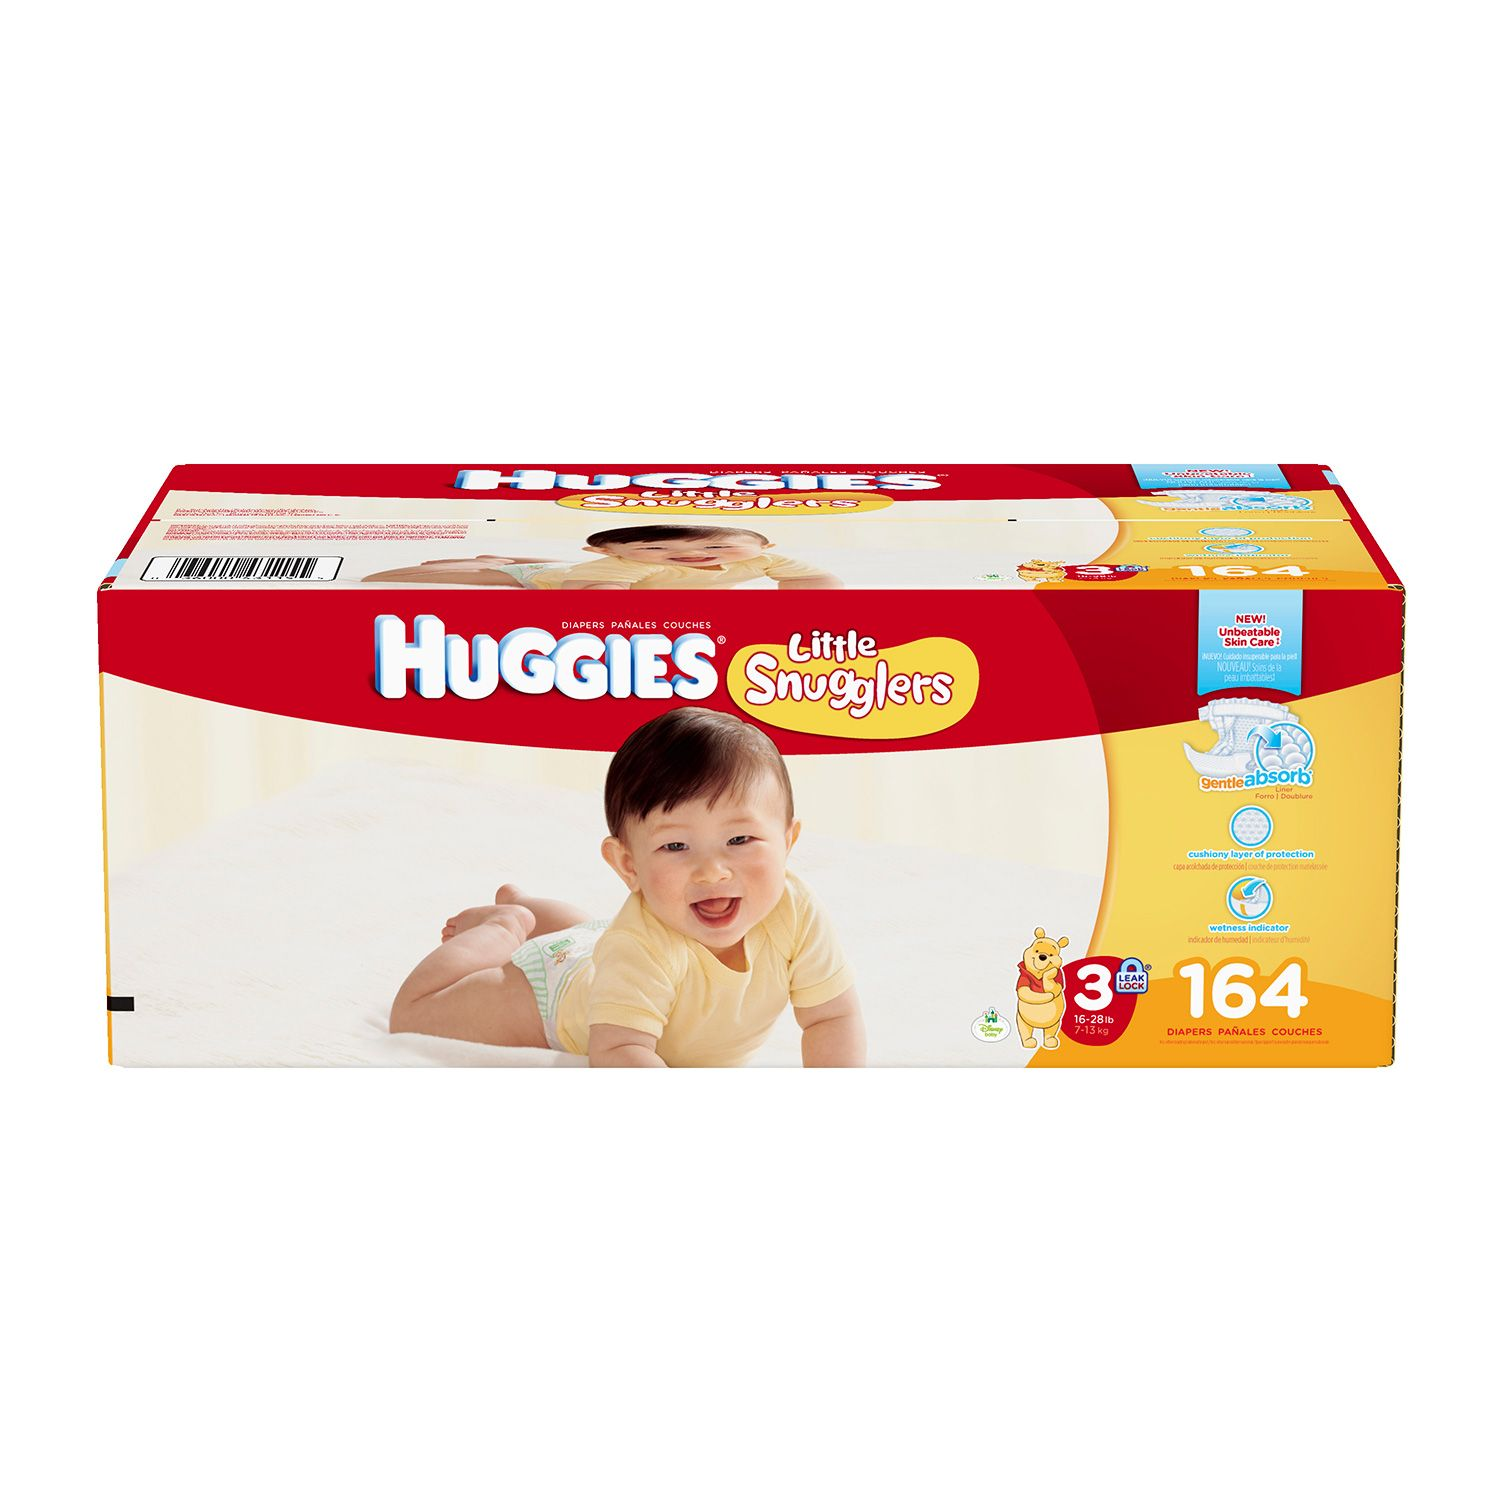 Huggies Little Snugglers Diapers - Size 3 (164 ct.)